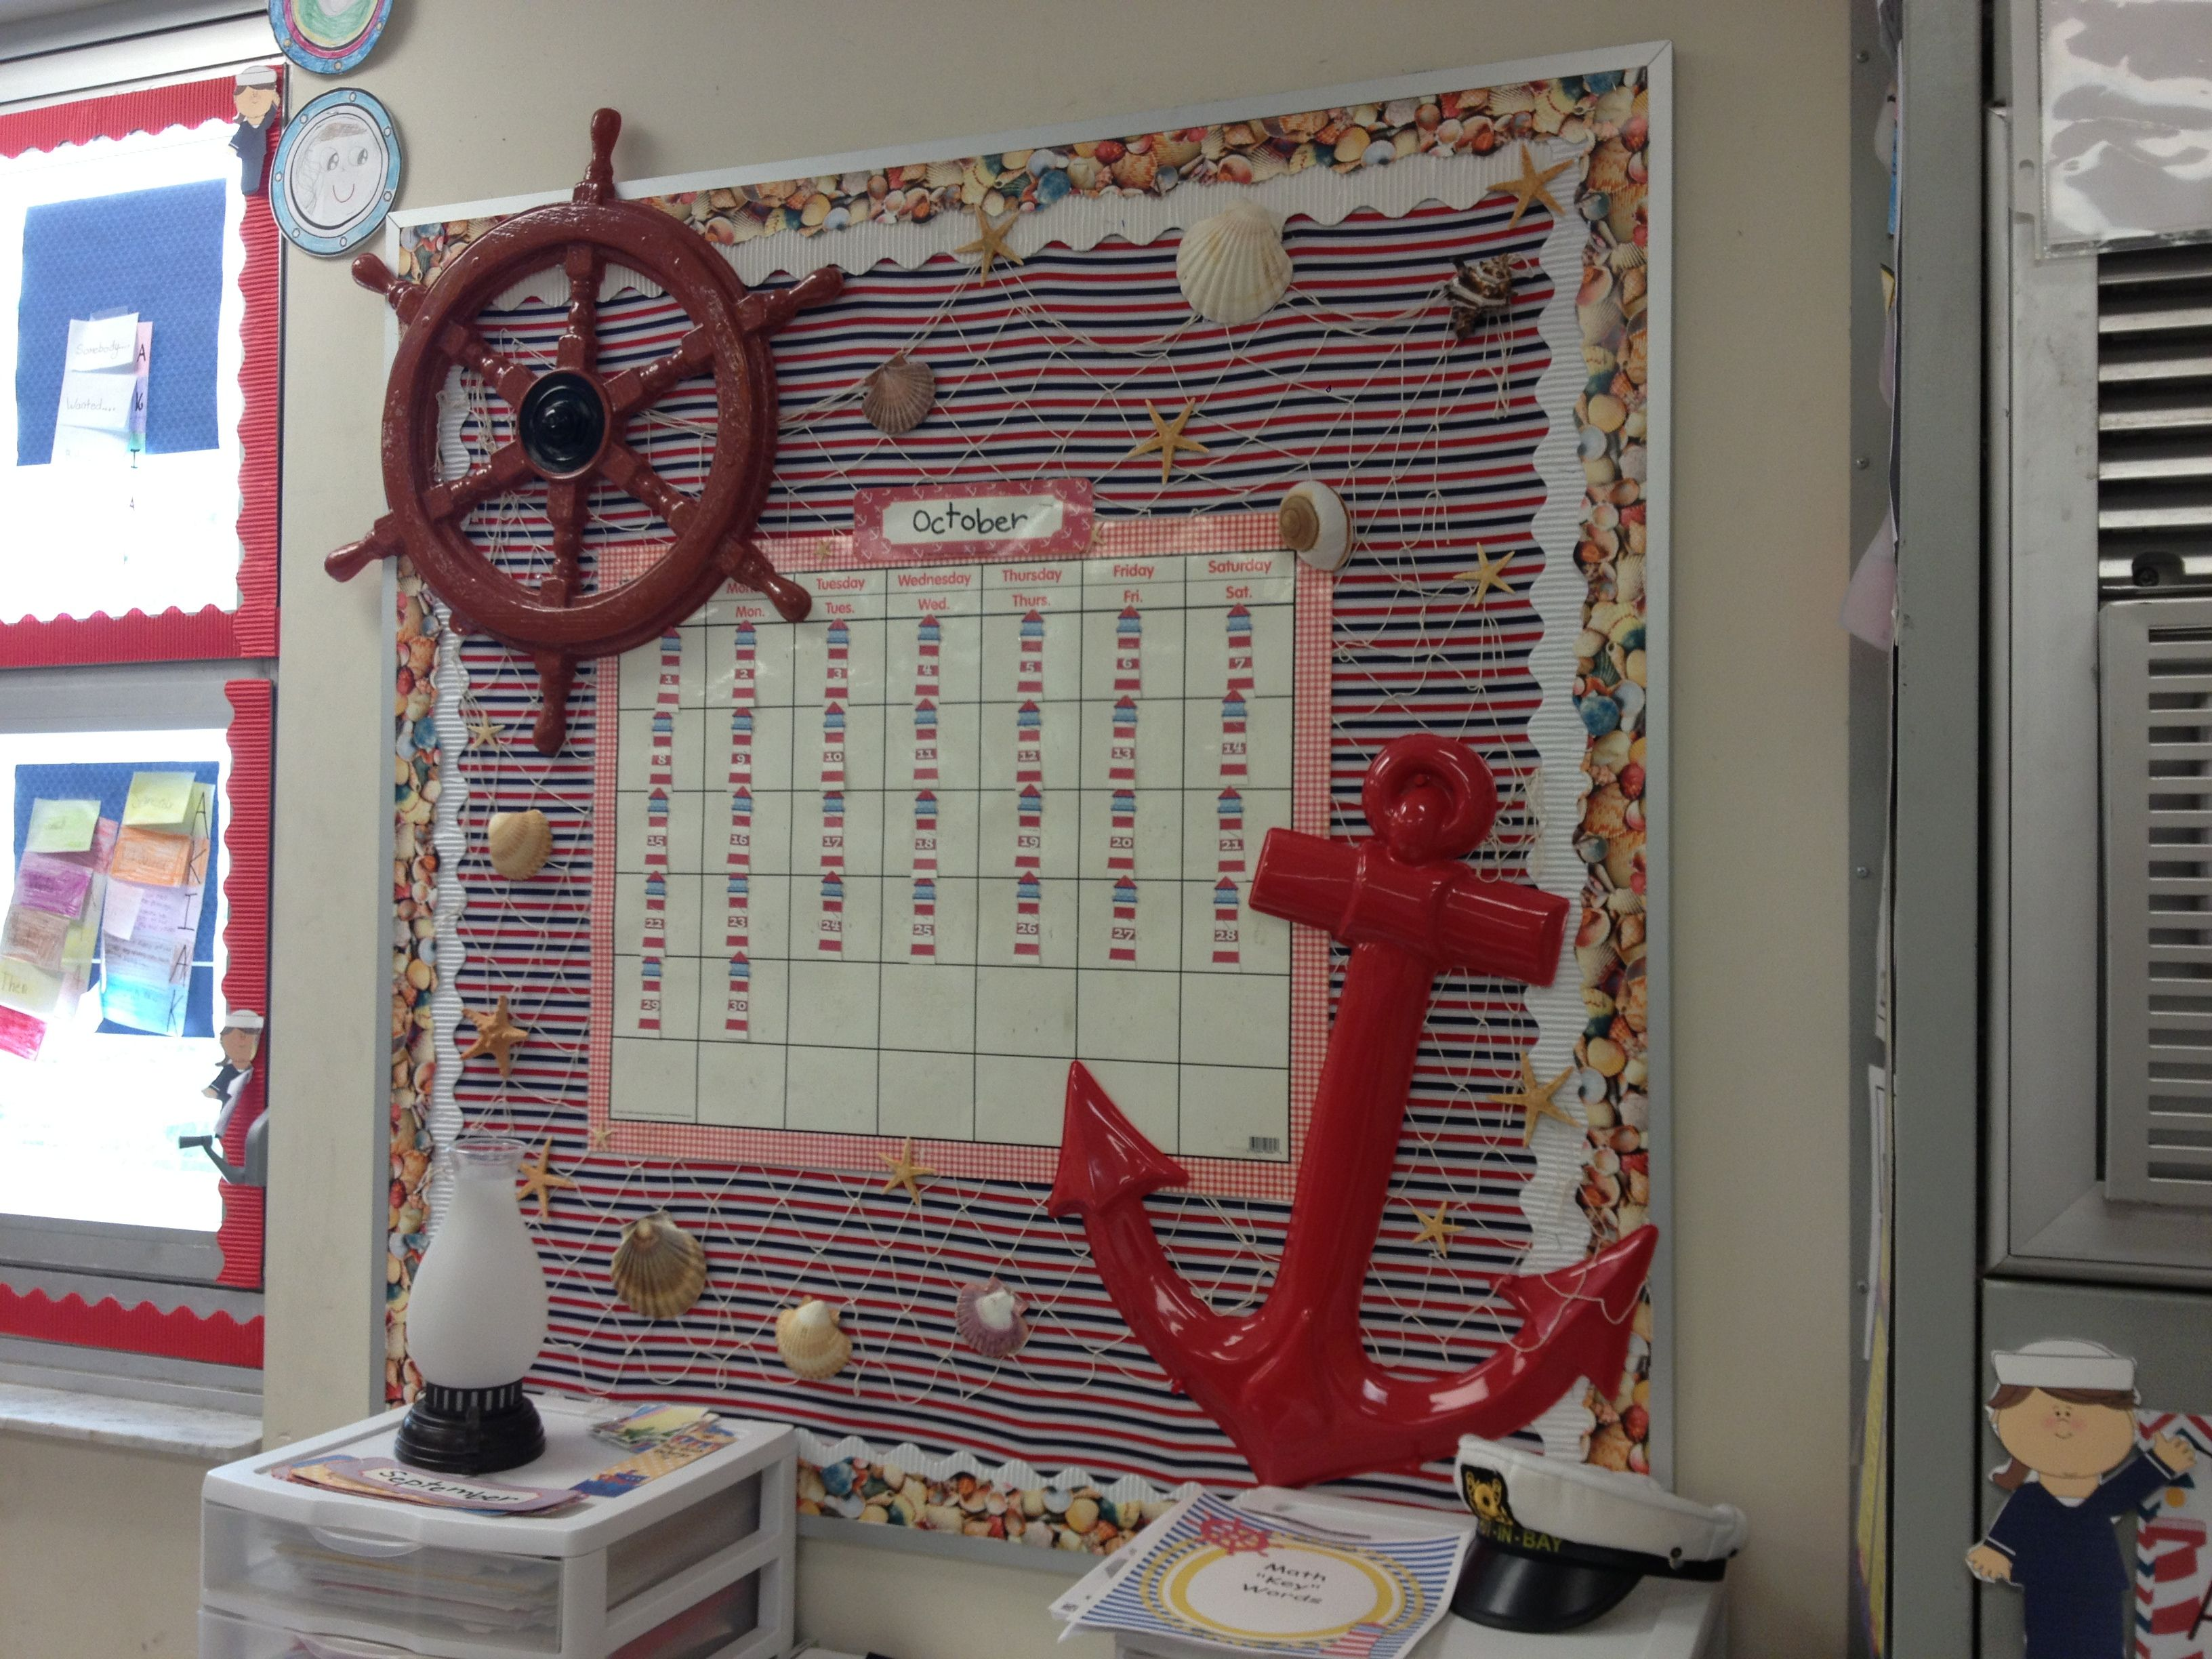 Anchor Classroom Decor ~ Nautical themed classroom bulletin board with calendar